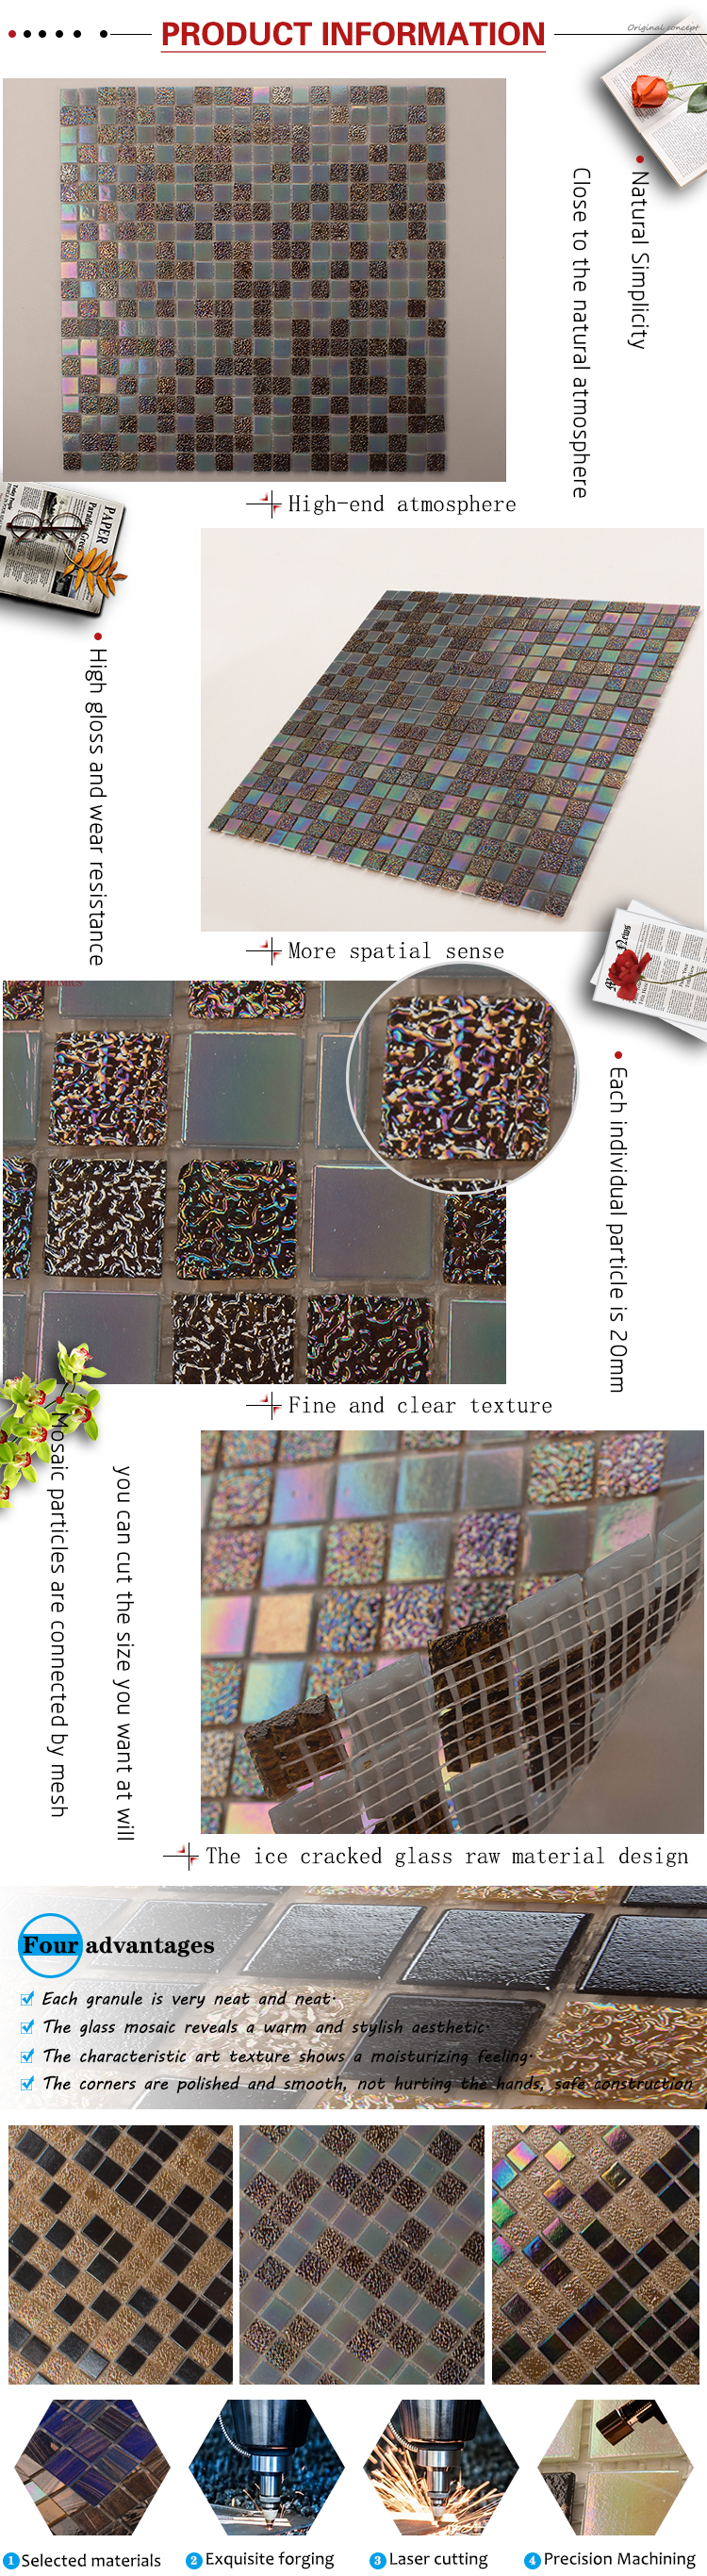 Foshan GUCI century colored mirrors bathroom glass mosaic tile